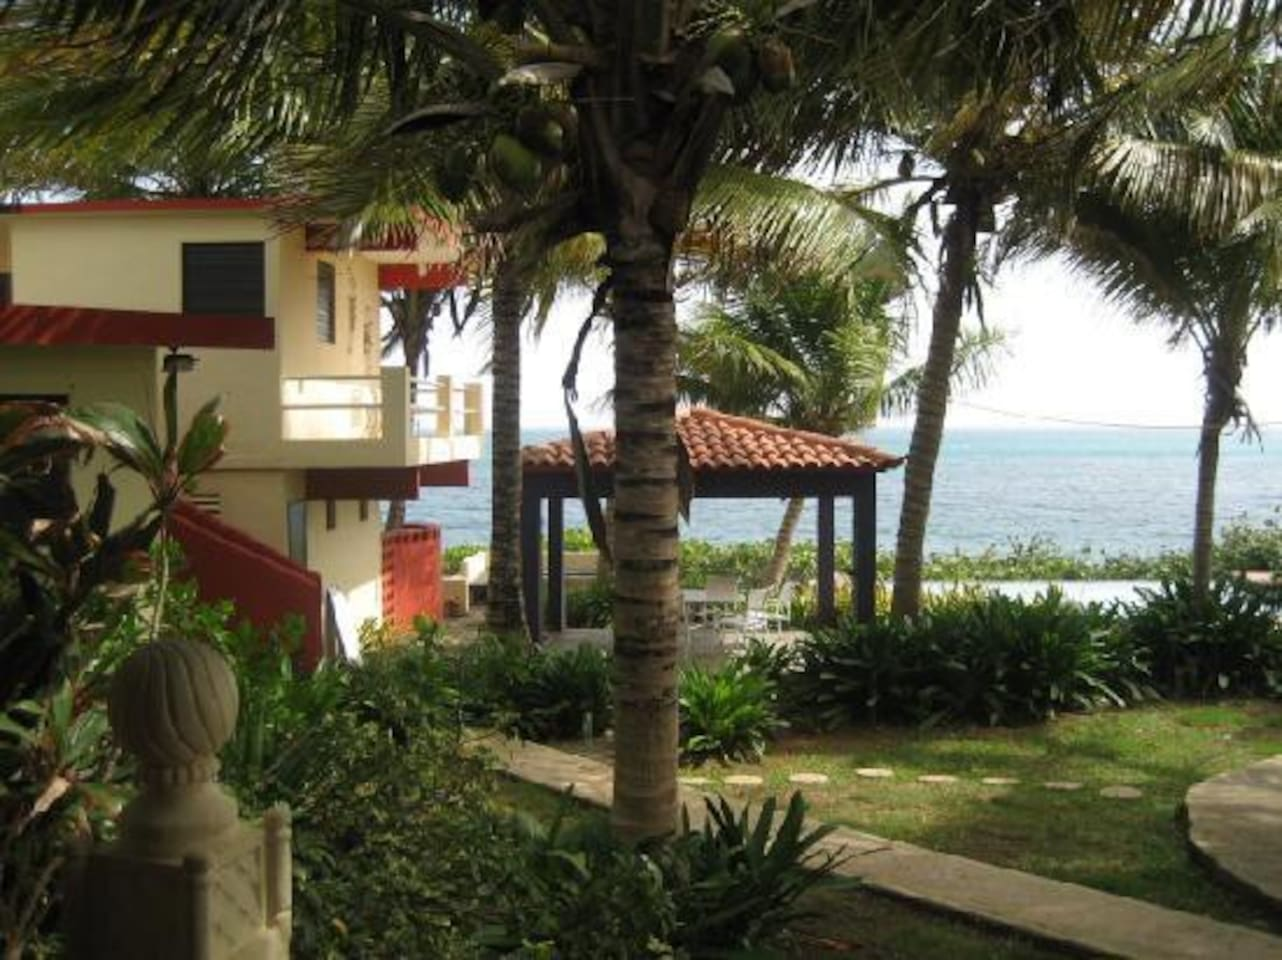 One acre of beach front property with 8 studios